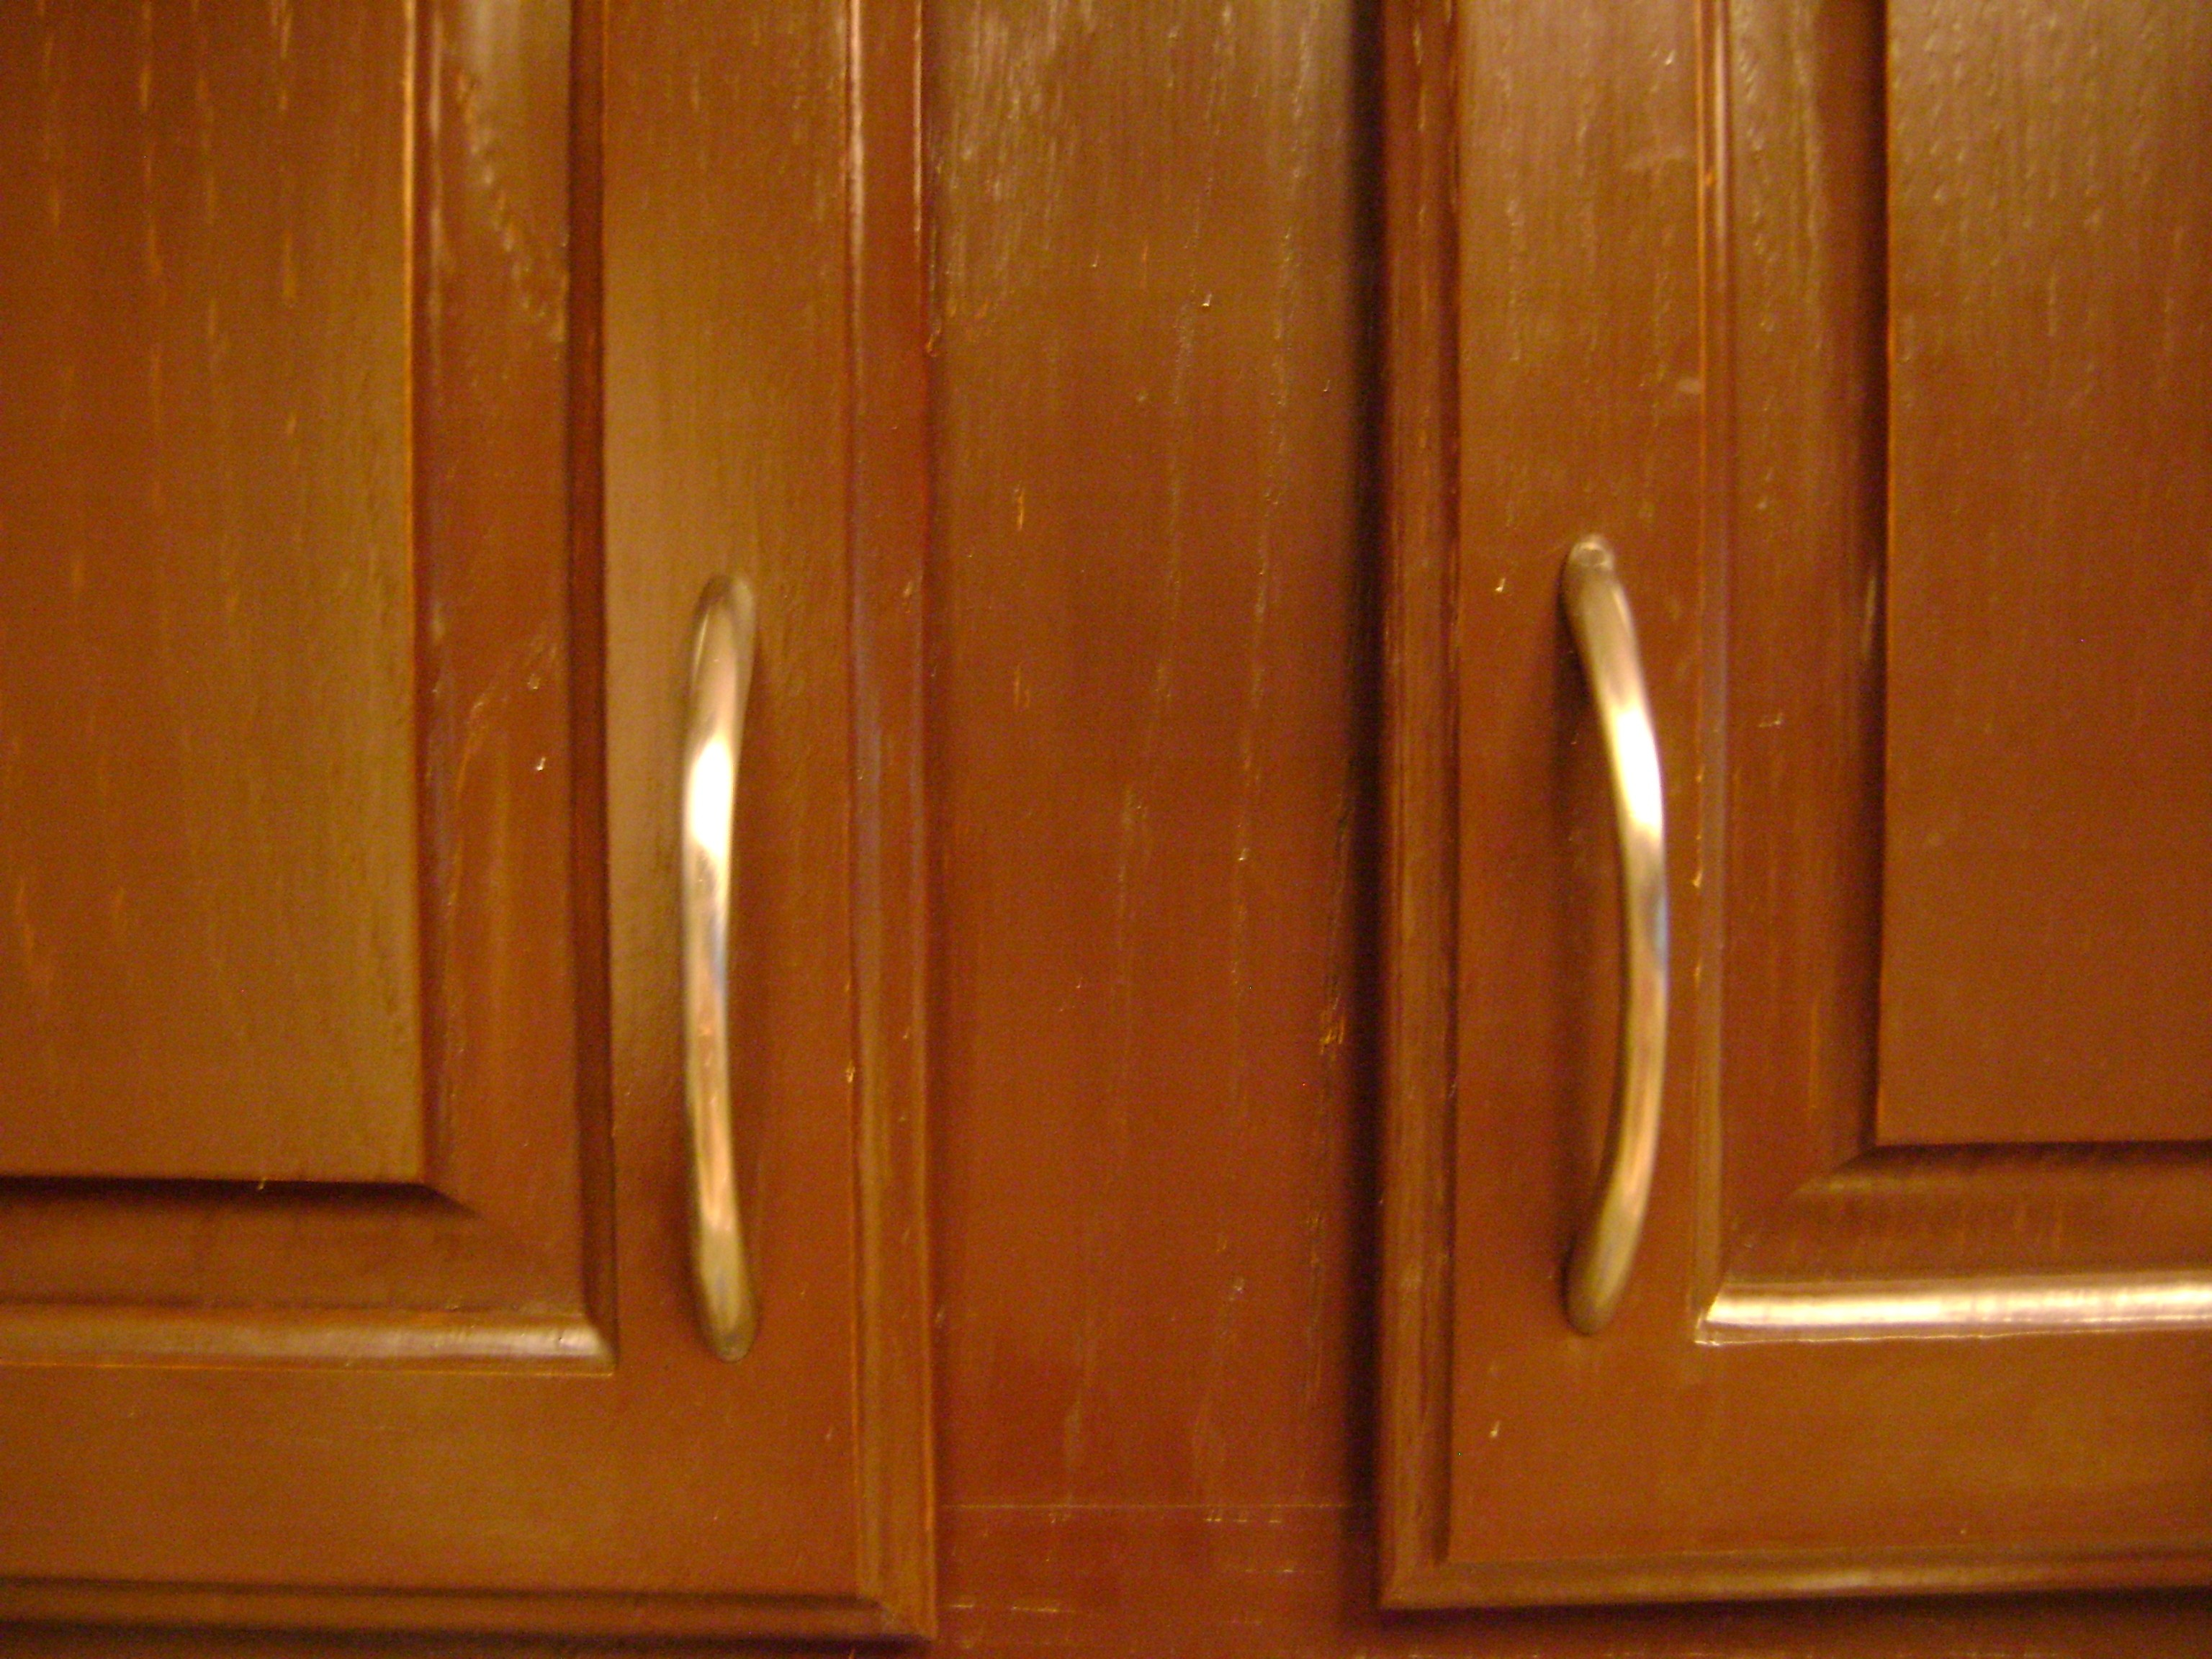 Kitchen Cupboard Door Handles Homebase : Kitchen.xcyyxh.com.